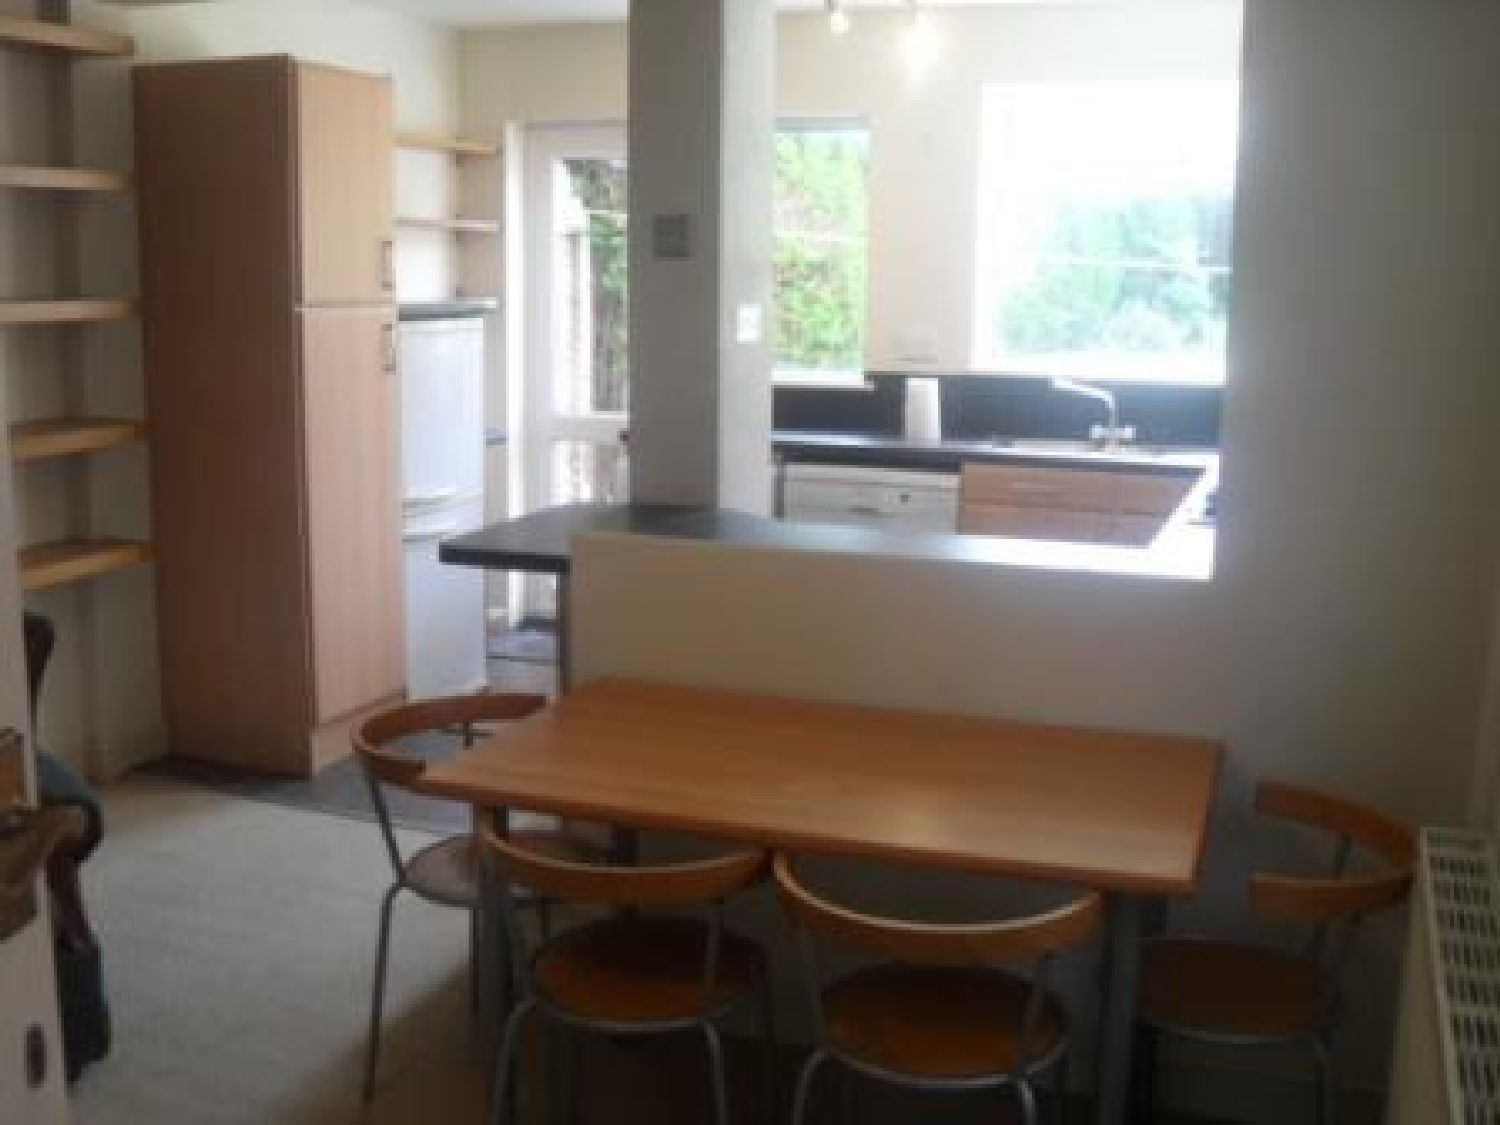 3 Bedrooms House Share for rent in Reservoir Road, Selly Oak, West Midlands, B29 6SX